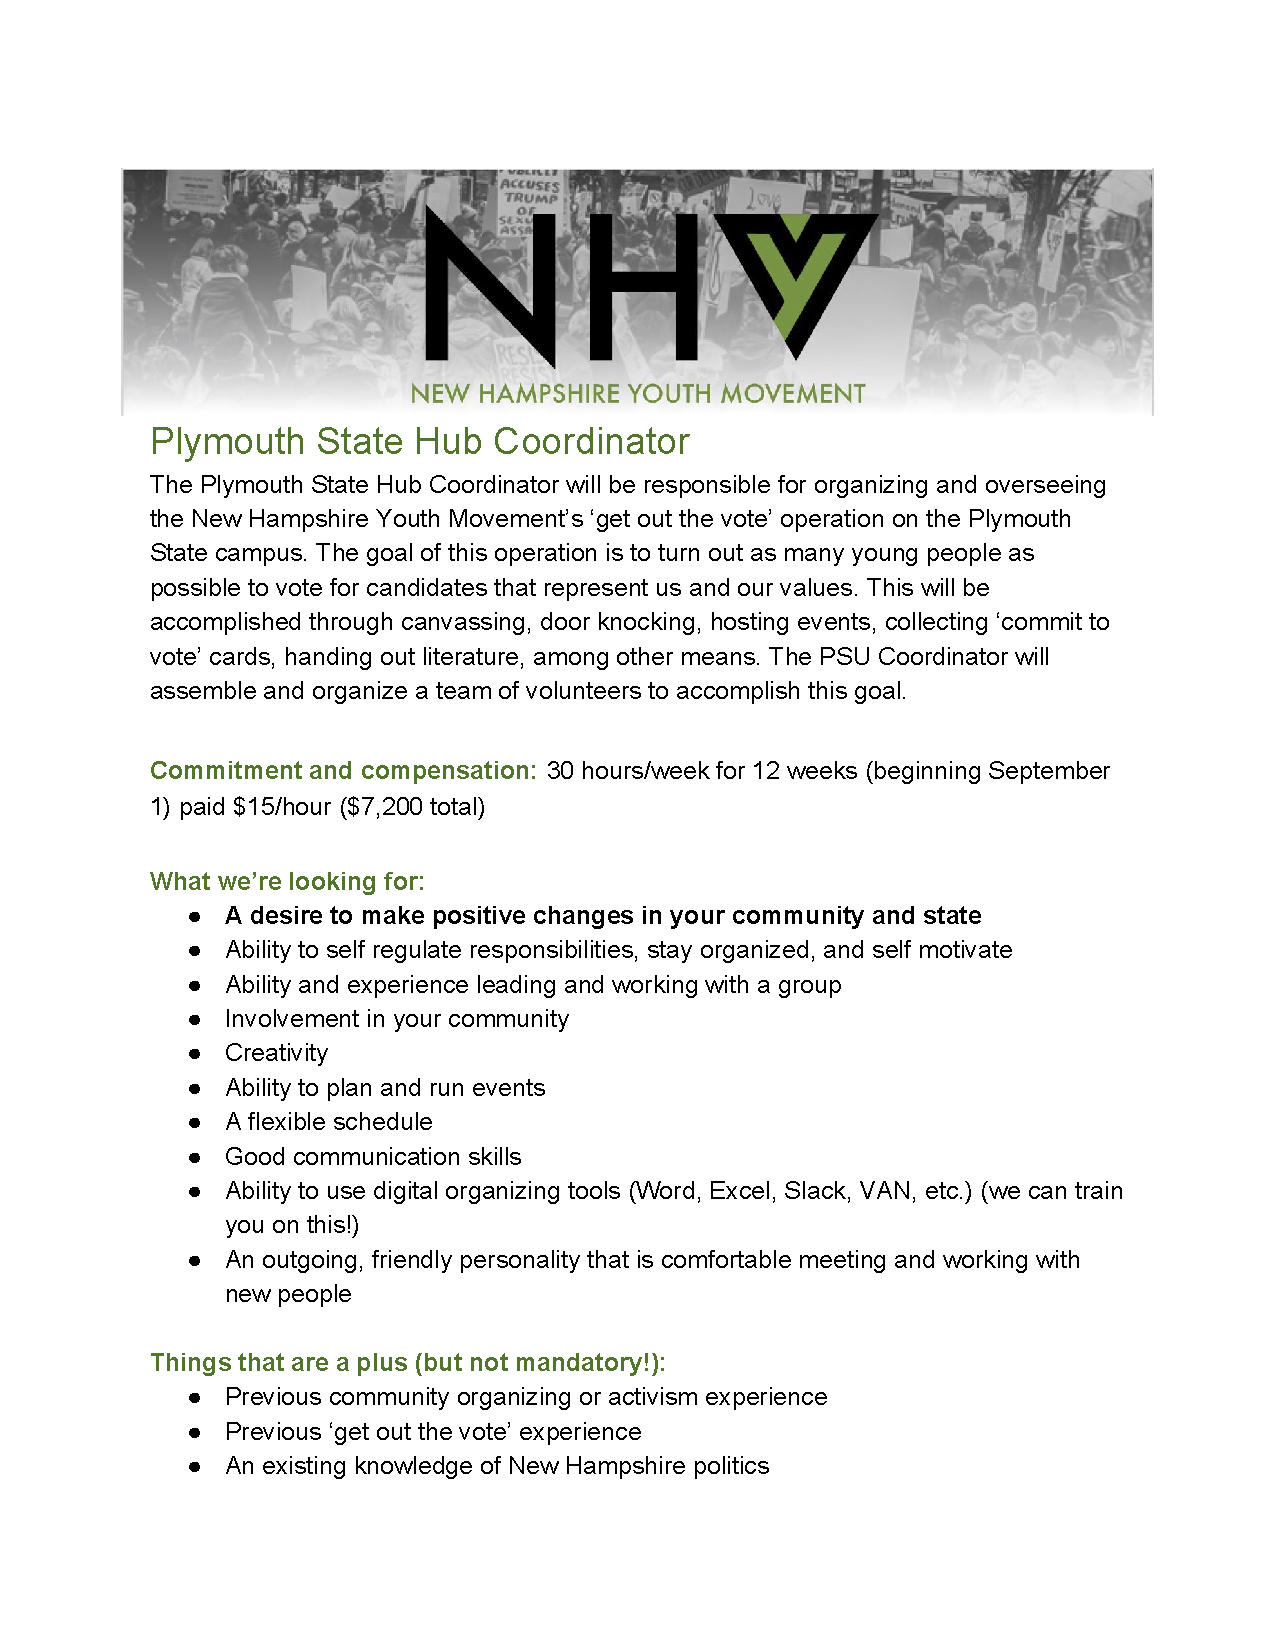 Application are live for Fall 2018! - We are now seeking applications for a full-time Hub Coordinator to lead our 'get out the vote' operation at Plymouth State University.Position begins September 1, so apply today!Interested?Apply at:https://goo.gl/forms/pZH3G6FnU7bNVhov1